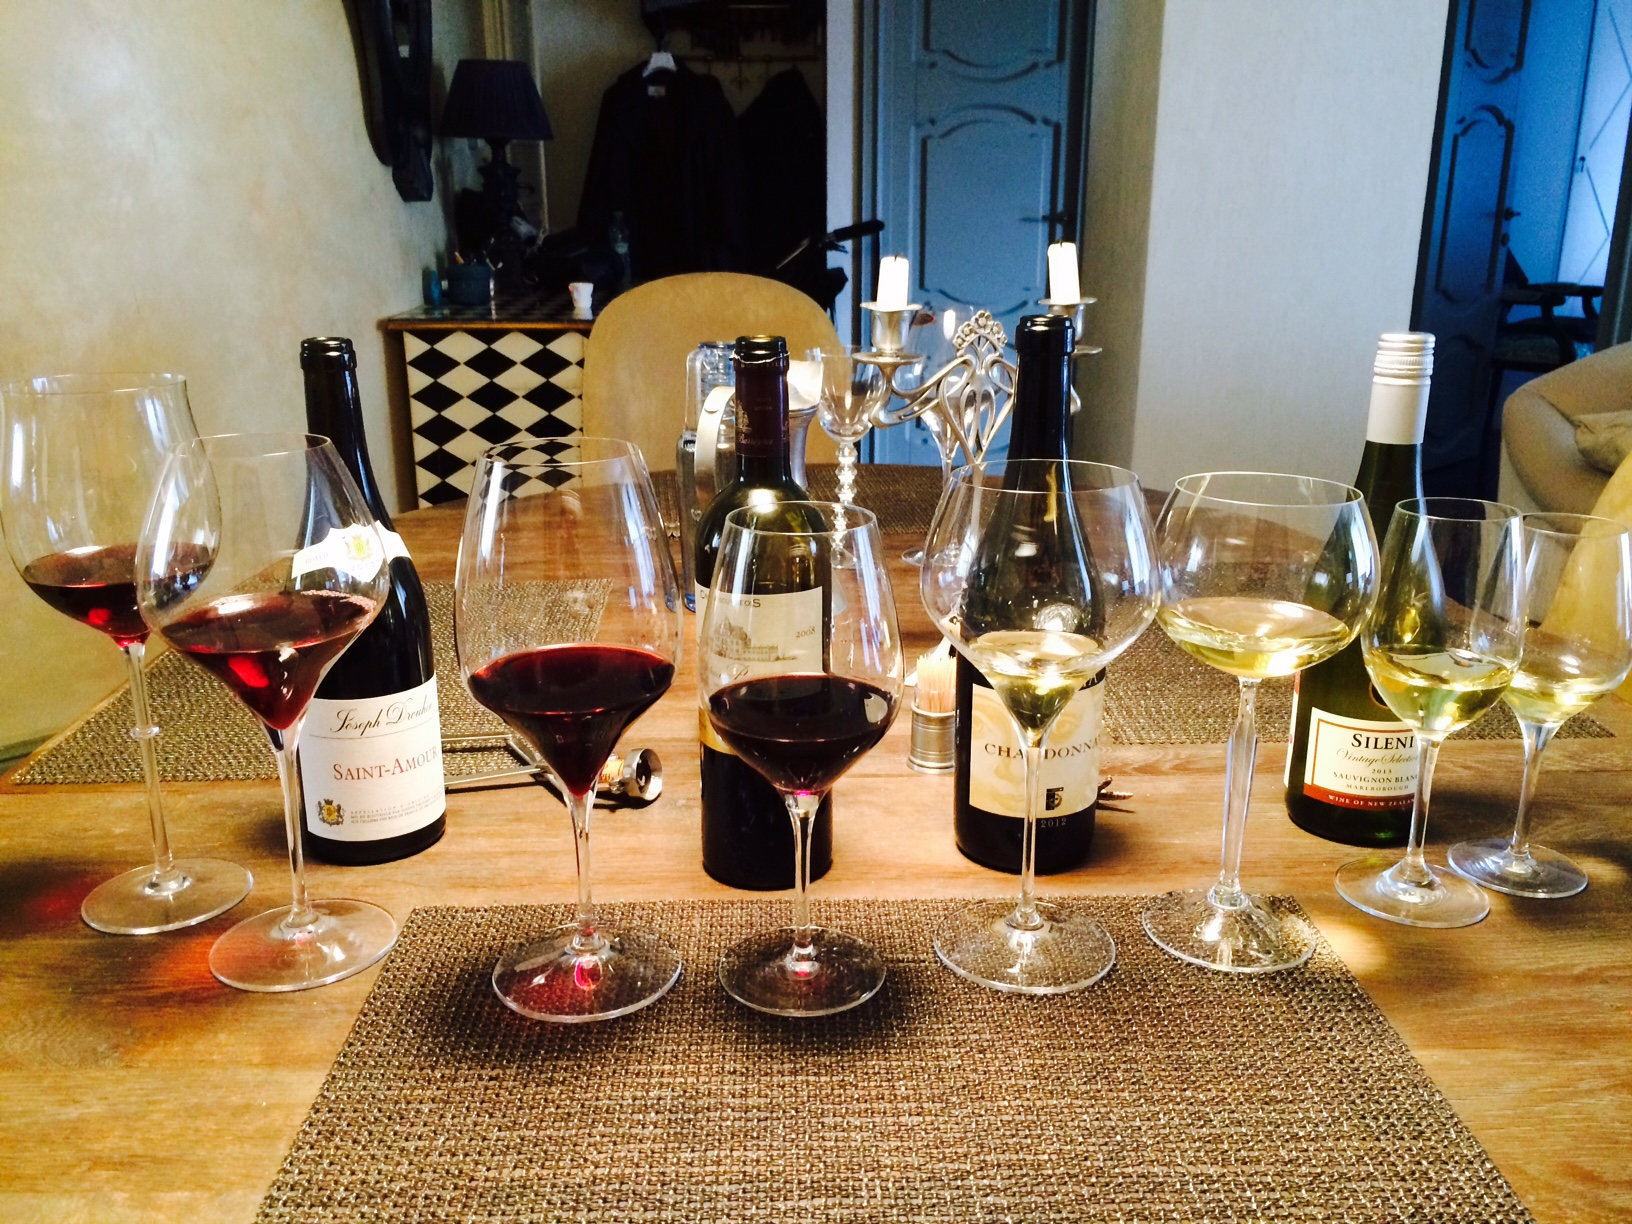 How to enjoy your wine more